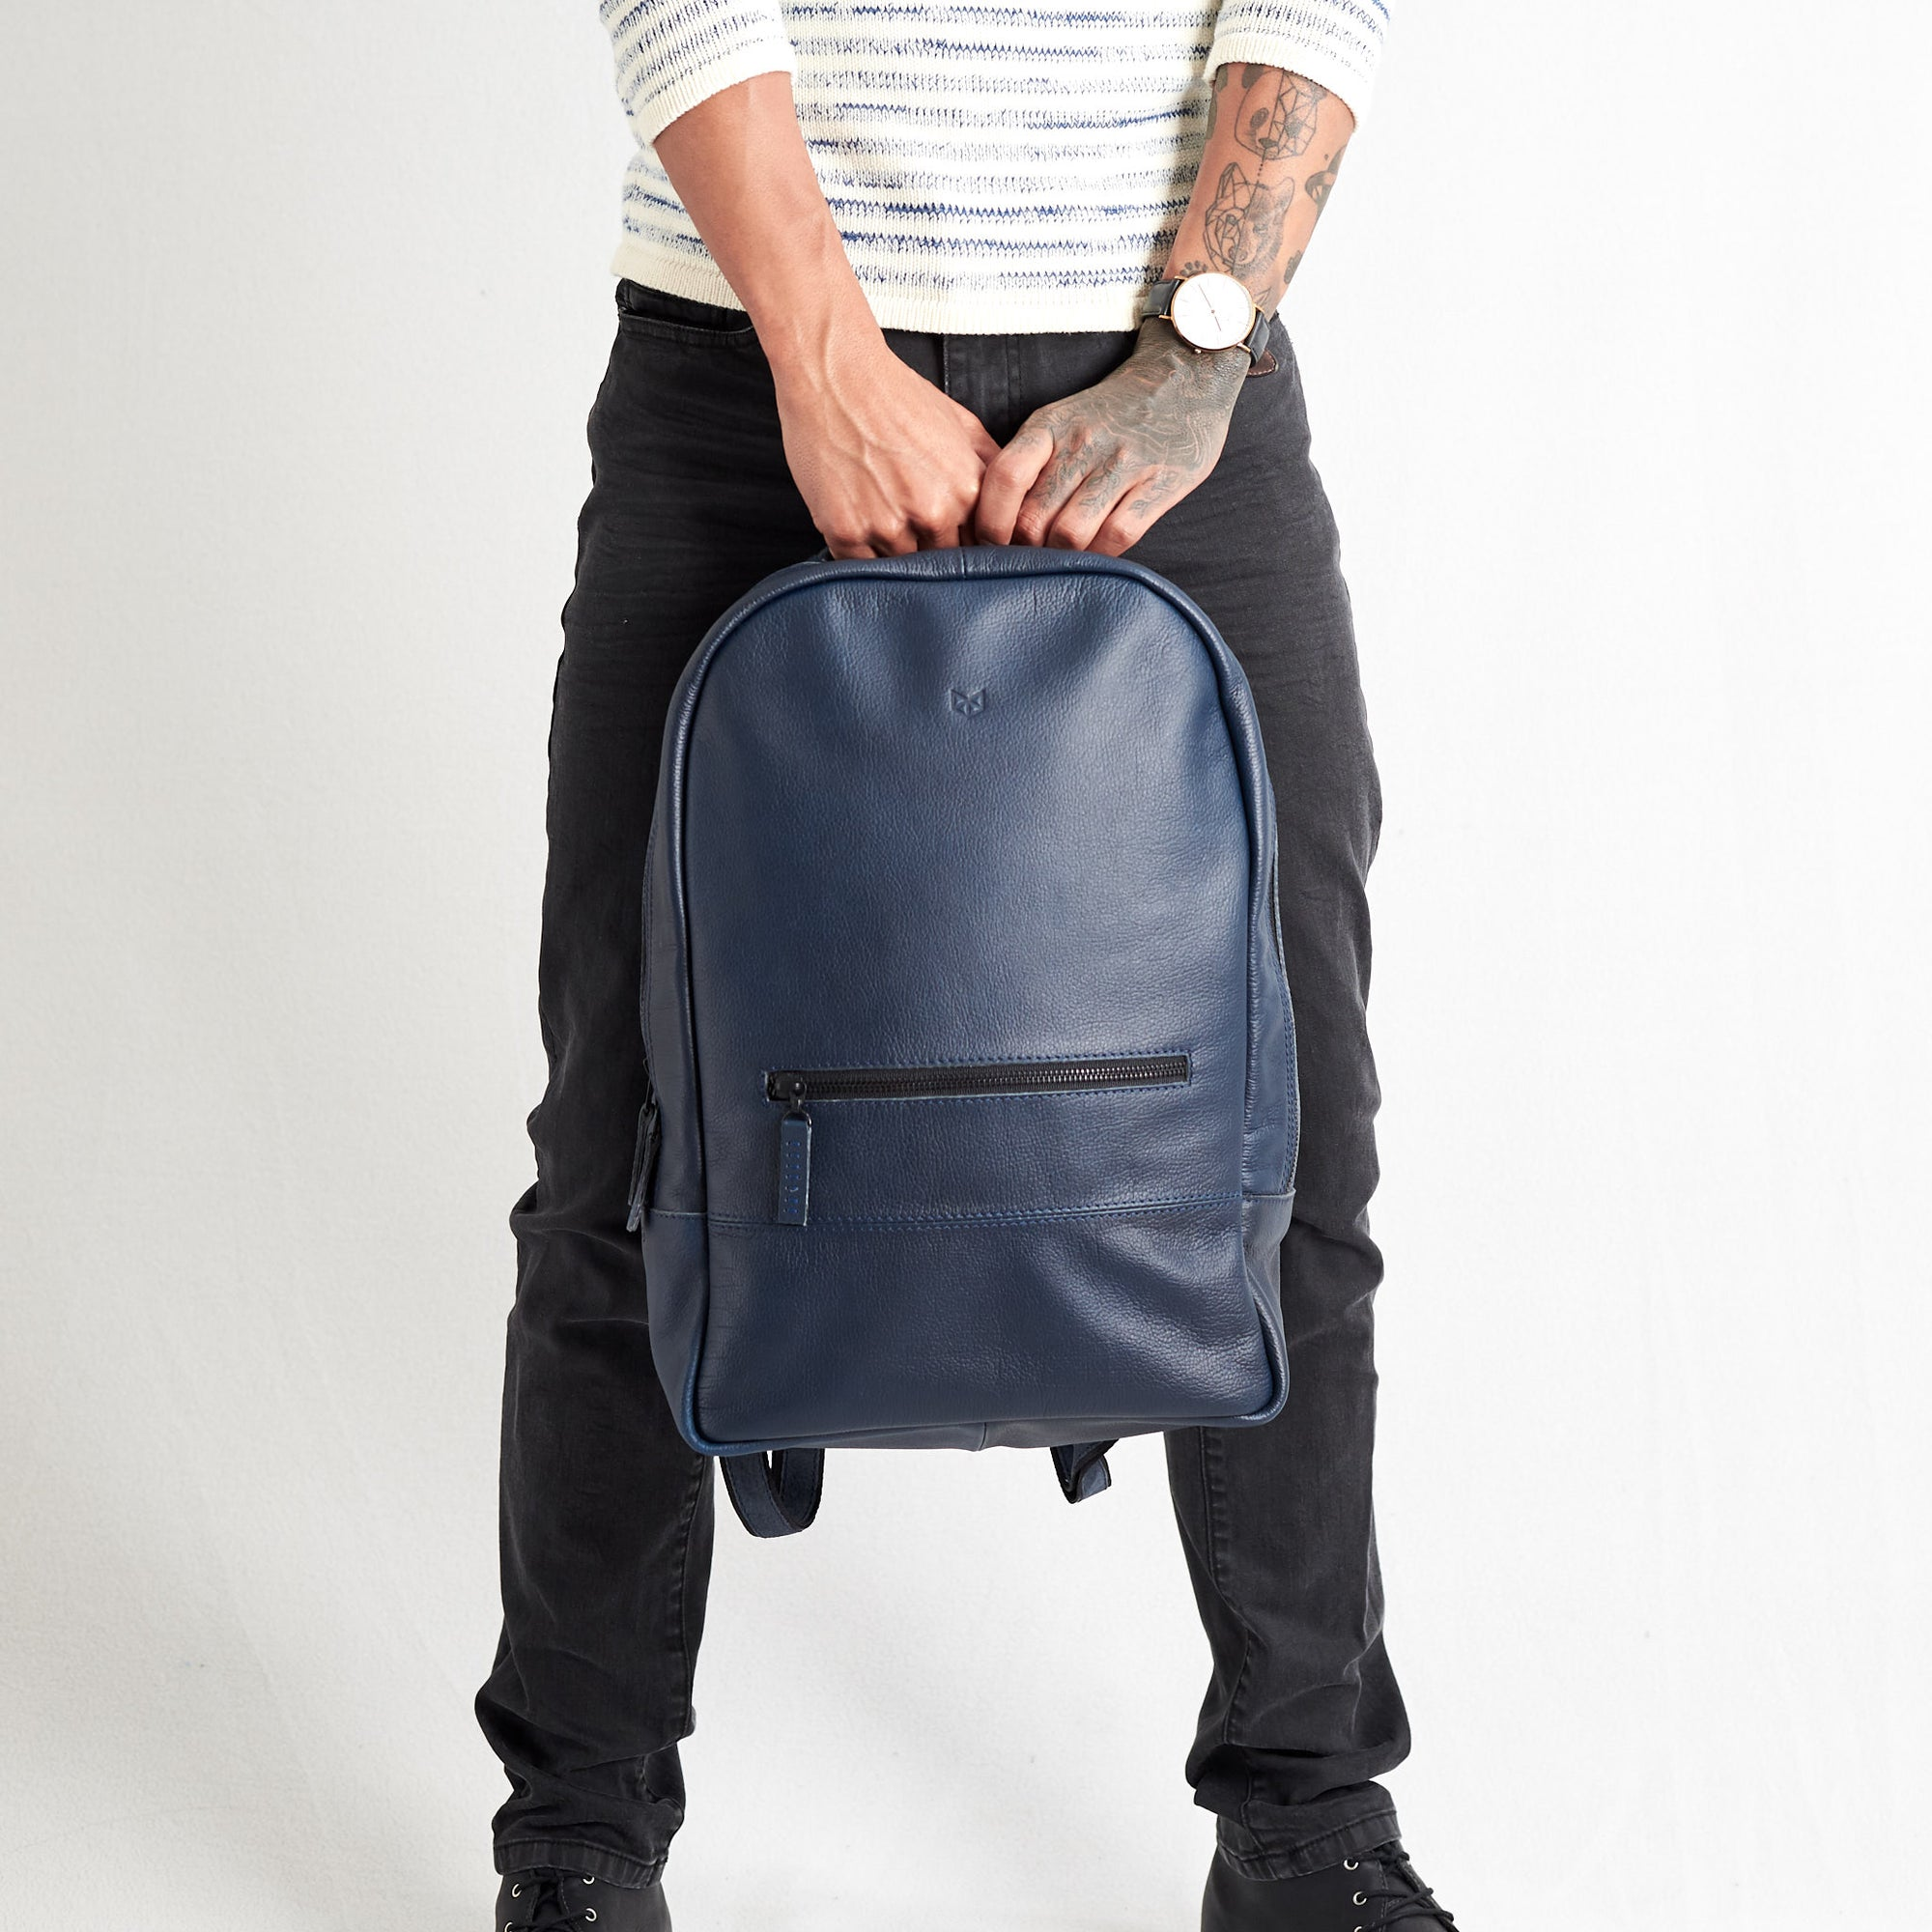 Minimalist Bisonte blue leather backpack for men. Handmade full grain leather rucksack